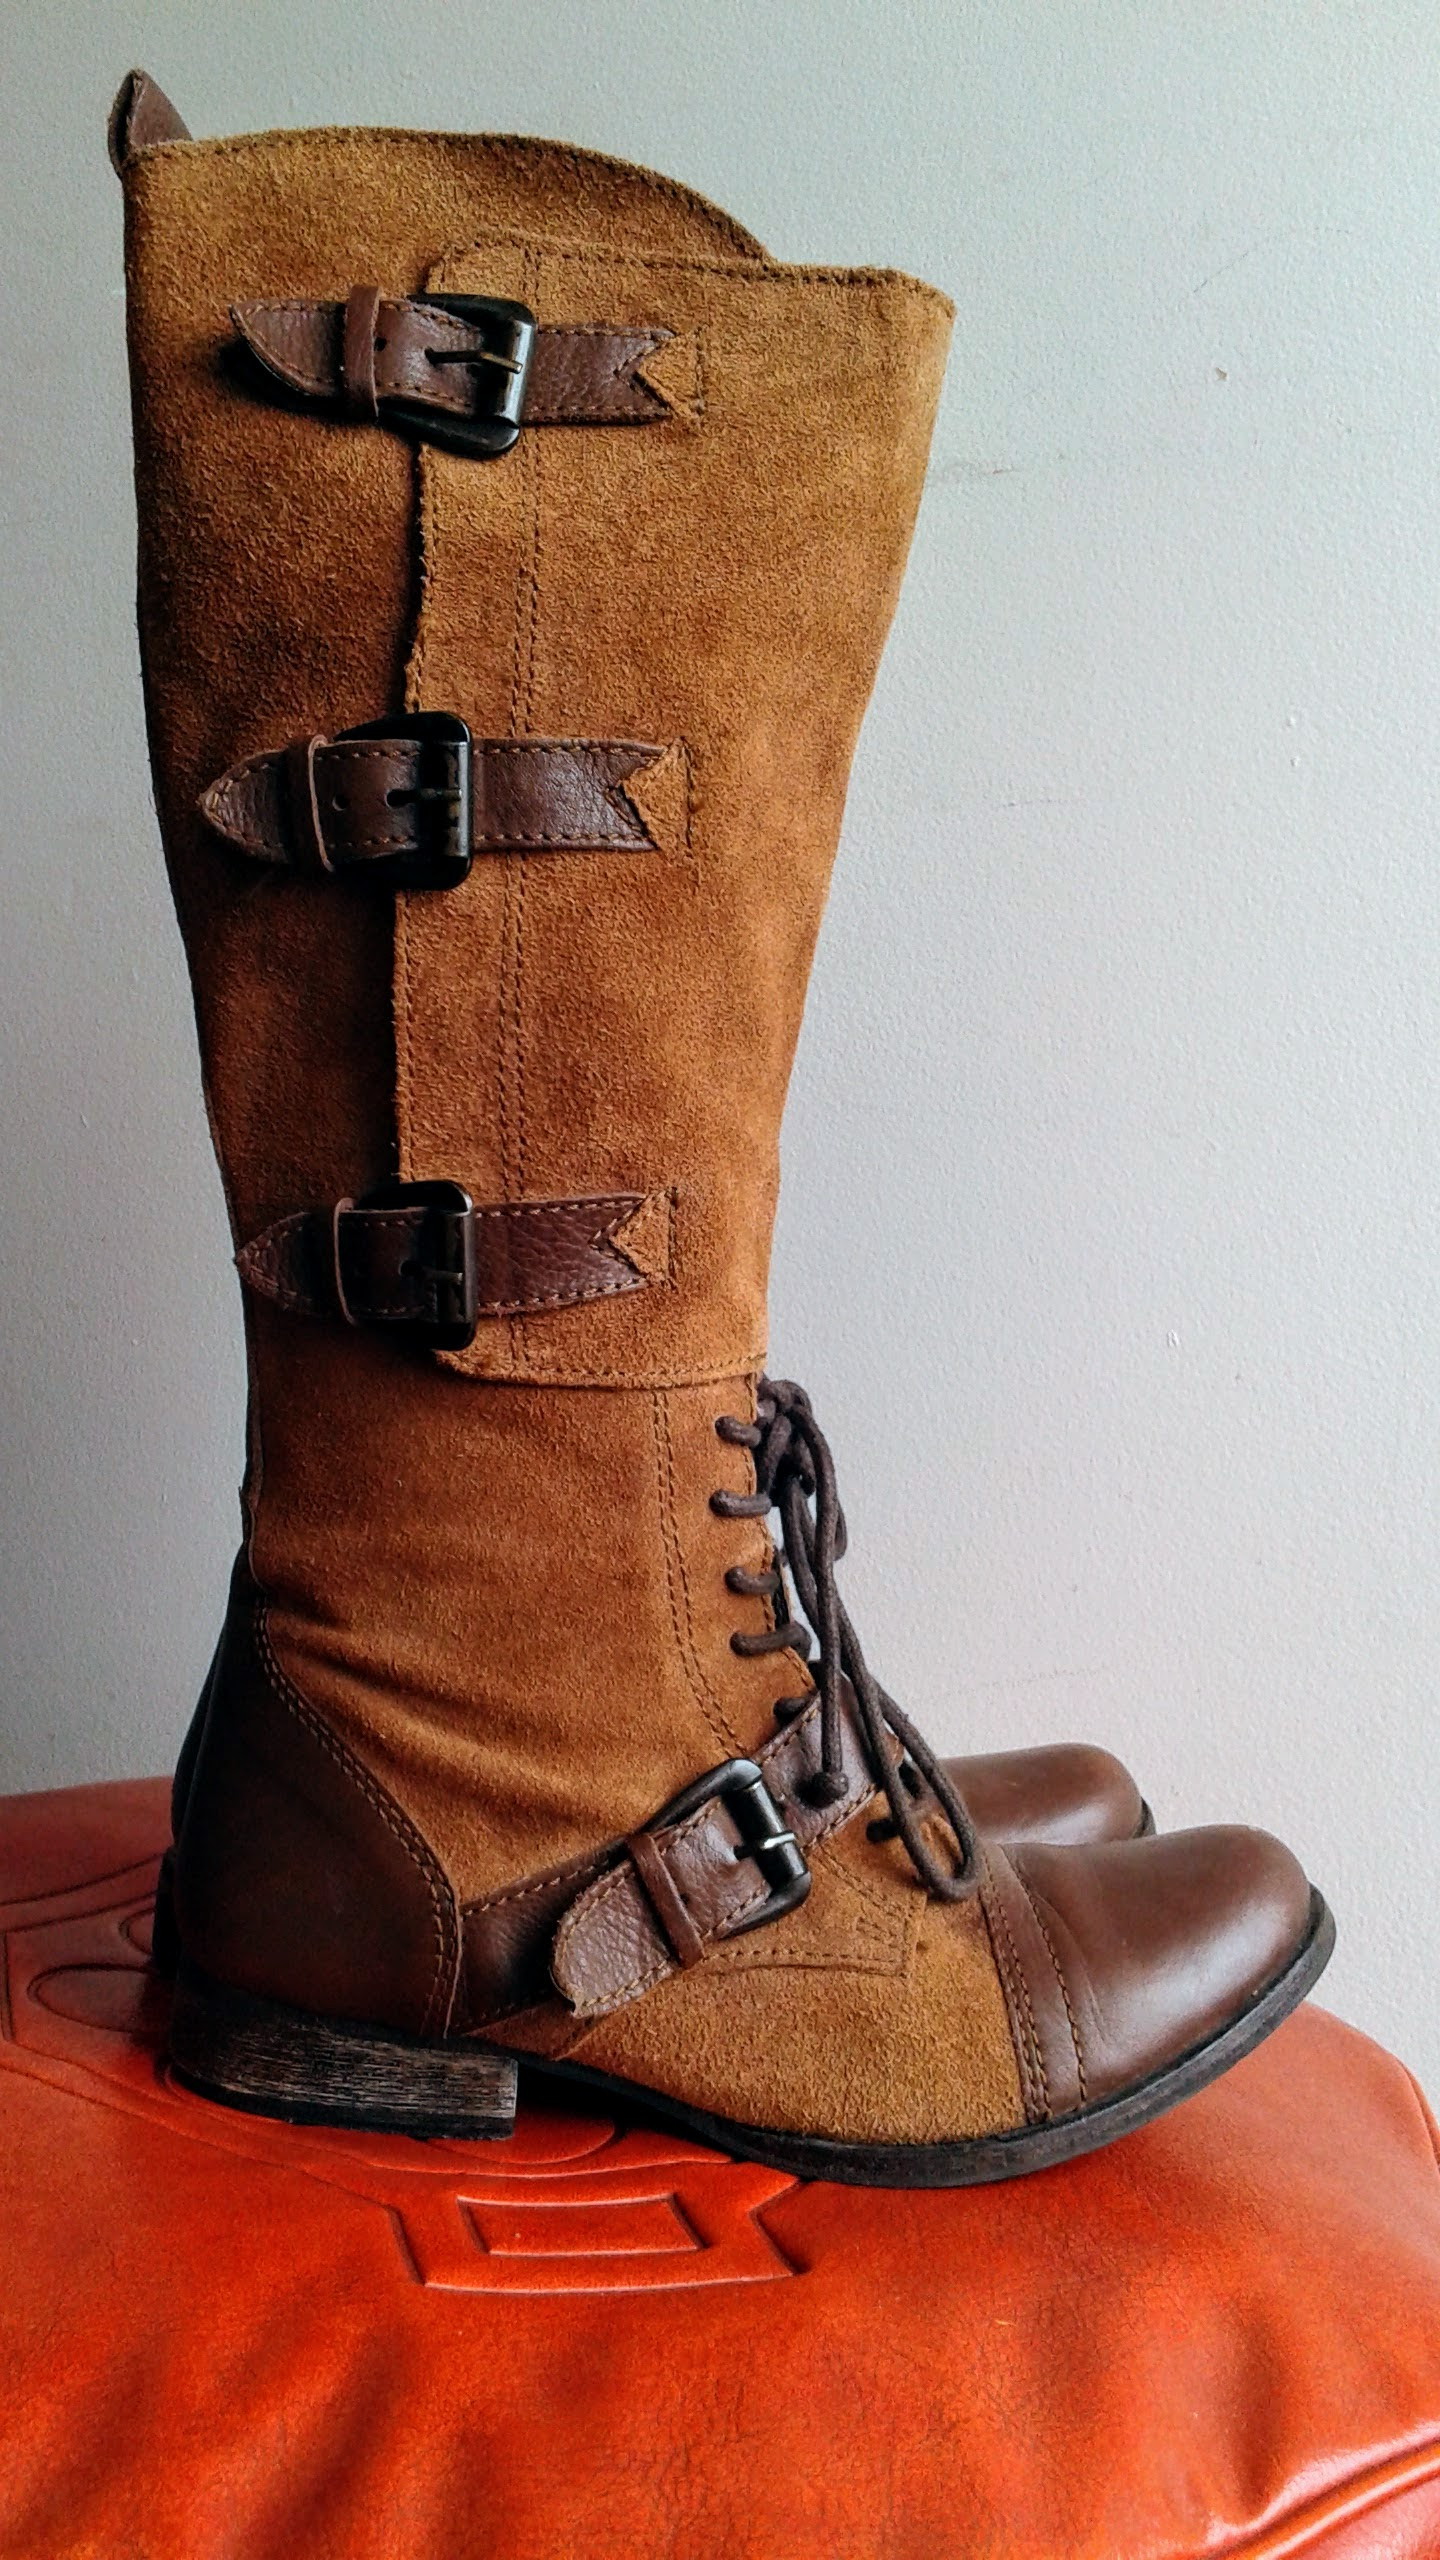 B2 boots; S7, $48